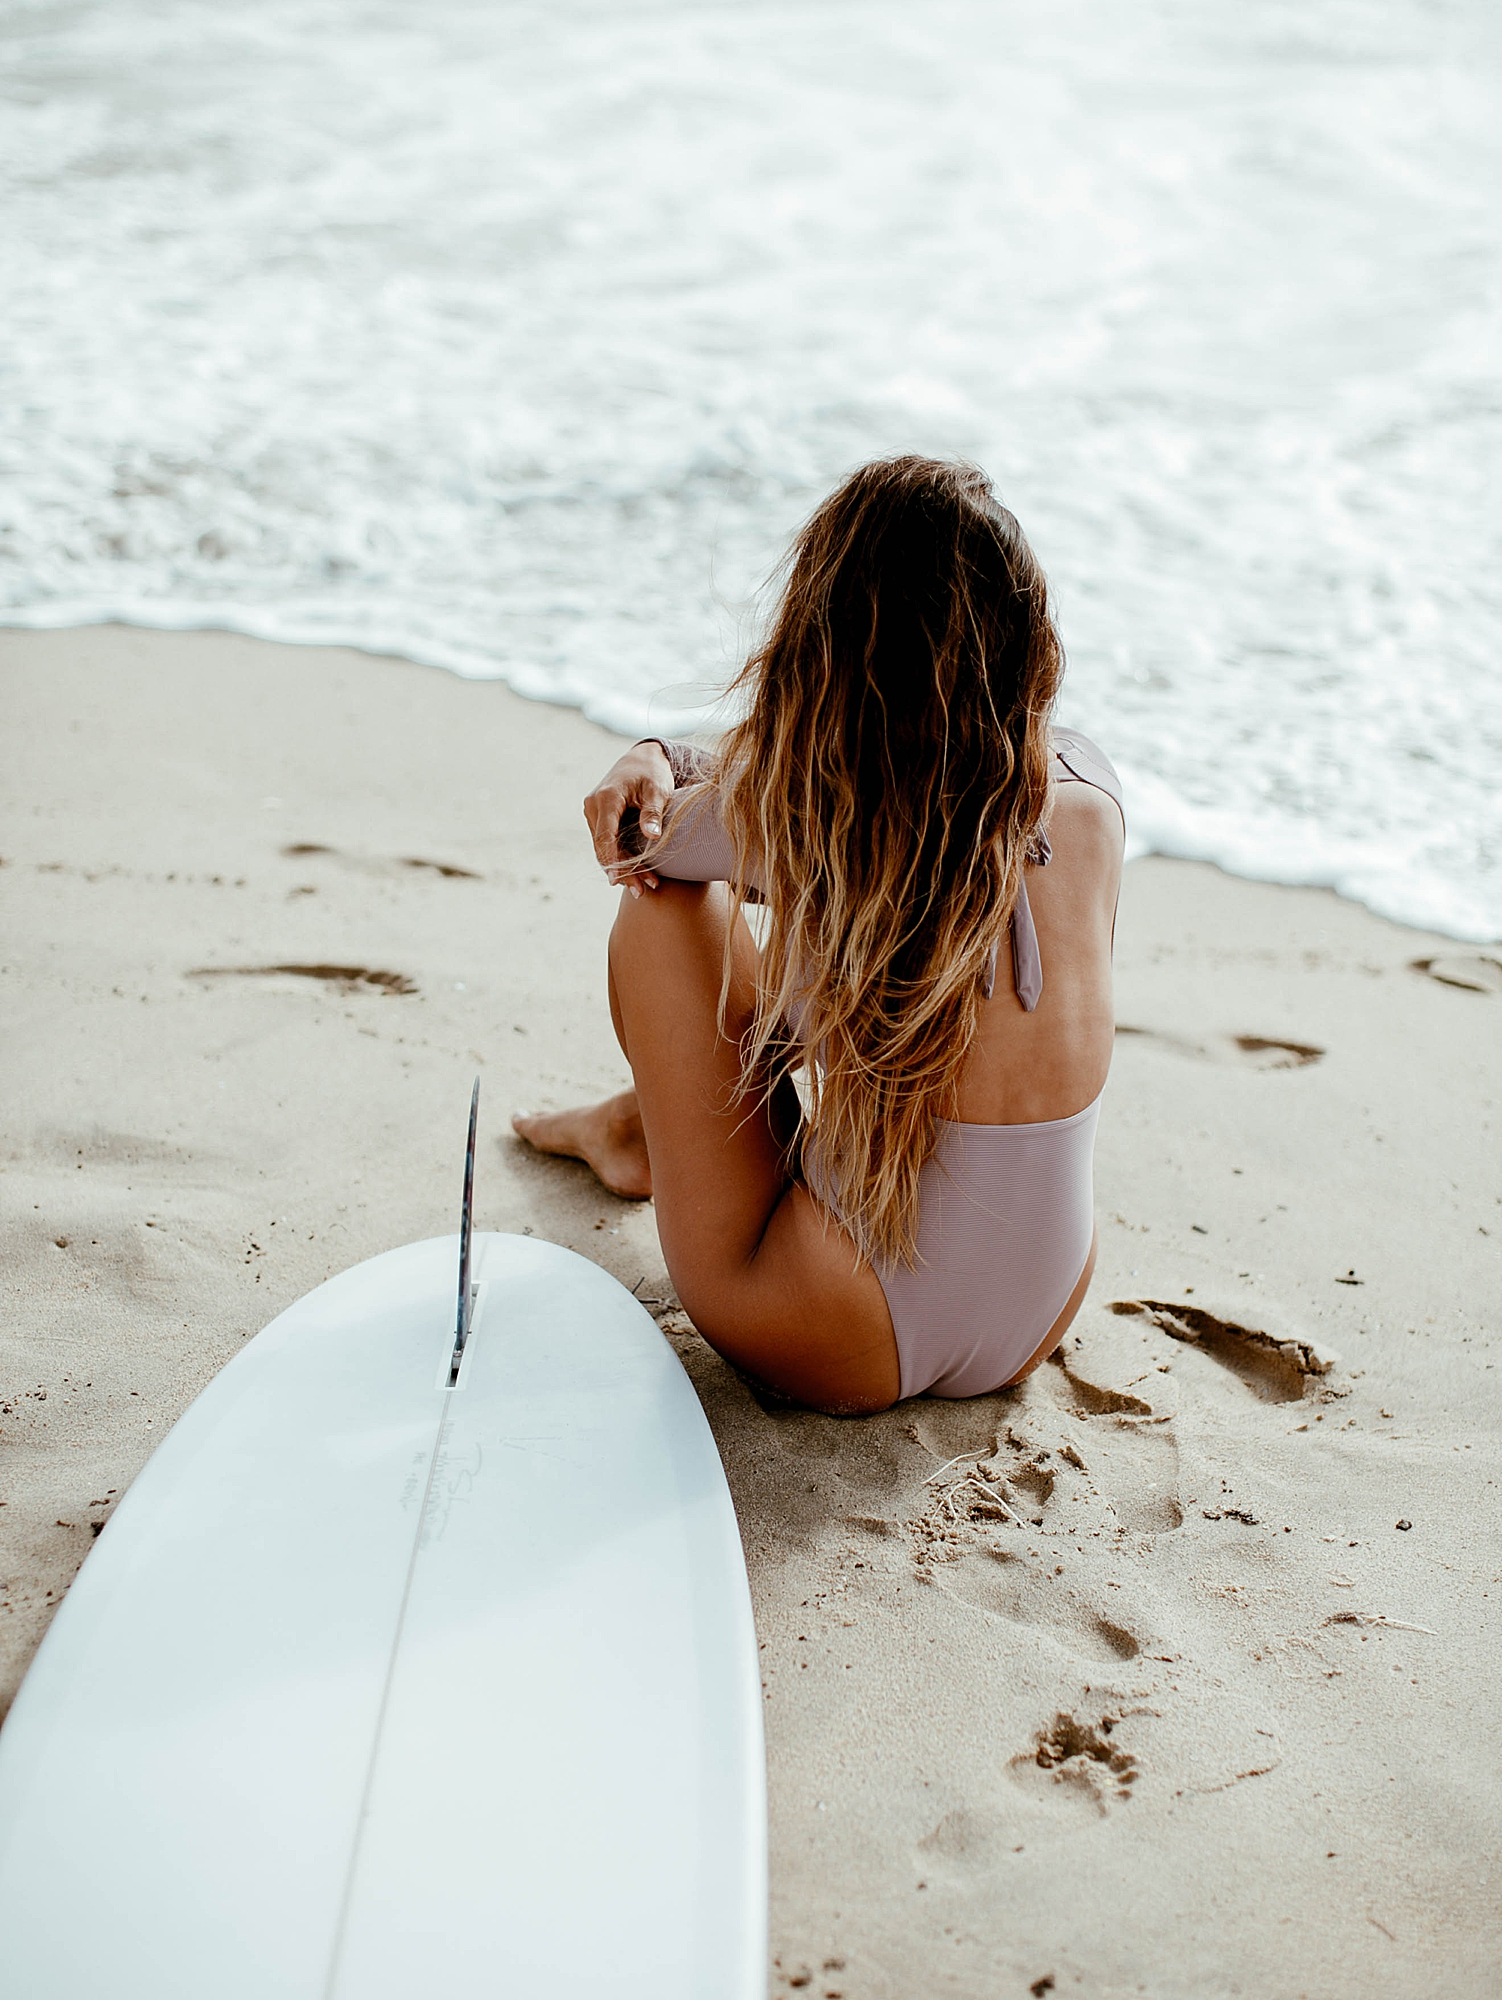 Southern California Surf and Lifestyle Fashion Photographer Kelee Bovelle @keleeb X Eryn Krouse @erynkrouse_0013.jpg